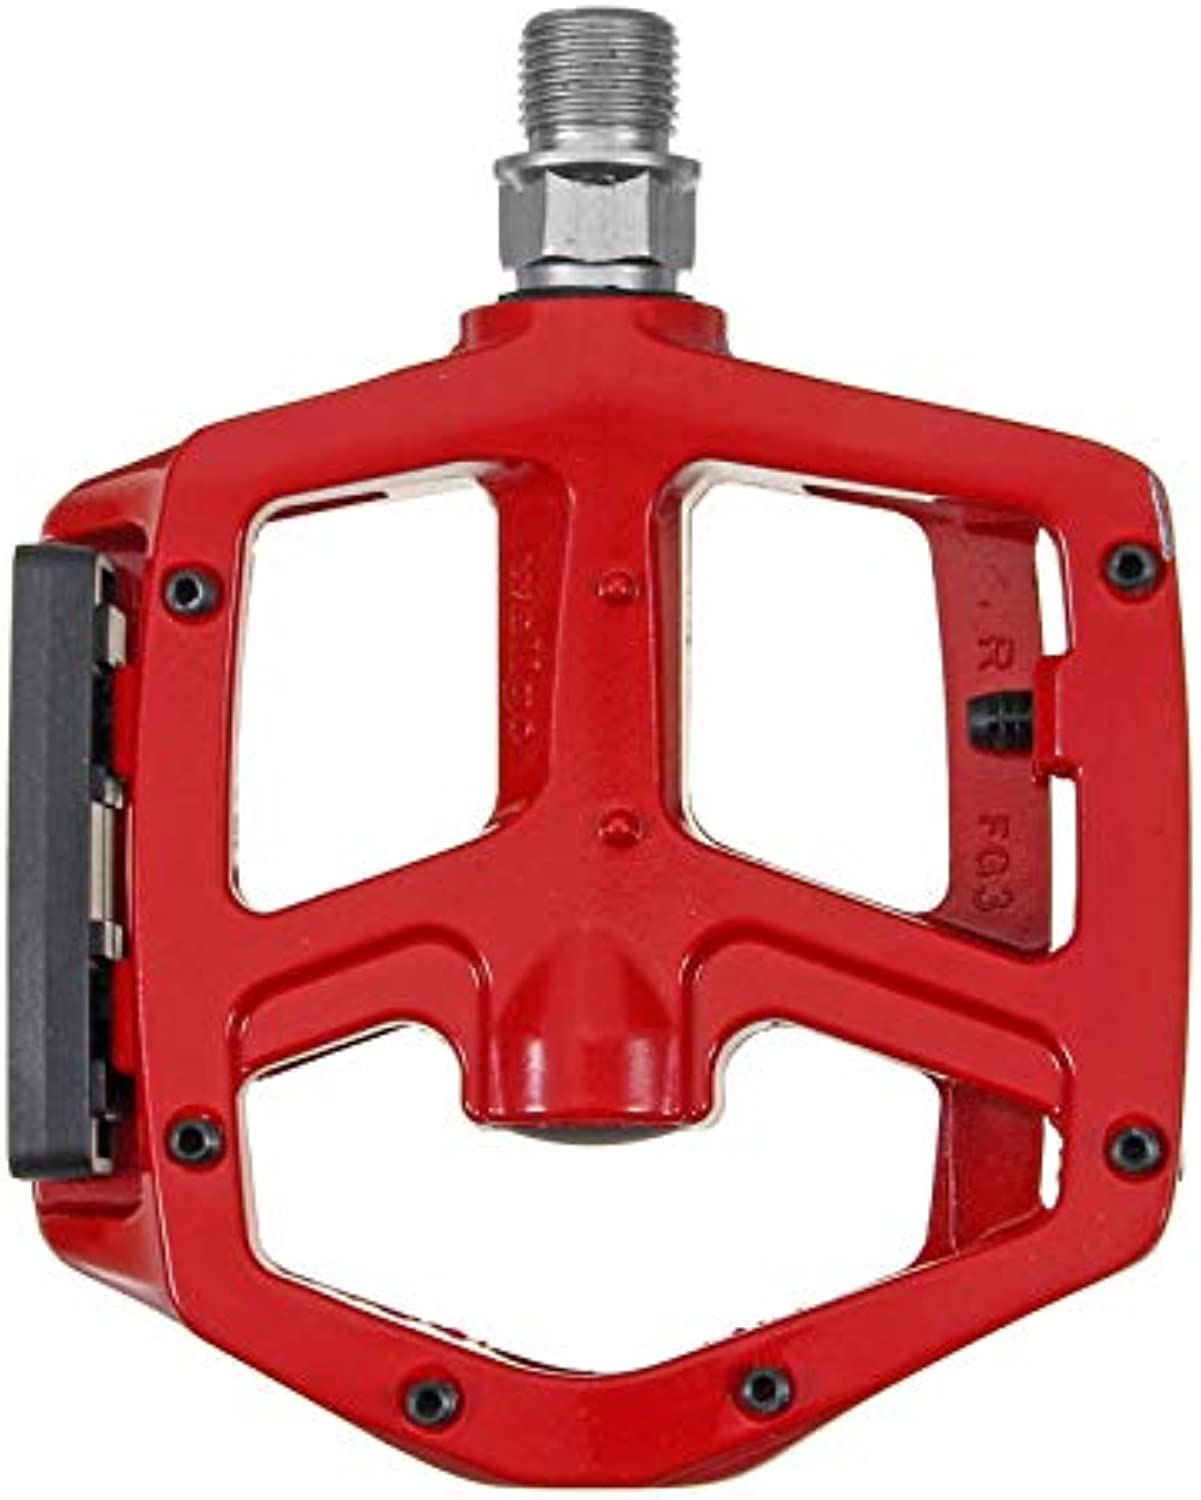 WELLGO MG36 Ultralight Pedals 2DU Aluminum Alloy MTB Mountain Bike Pedals  Red